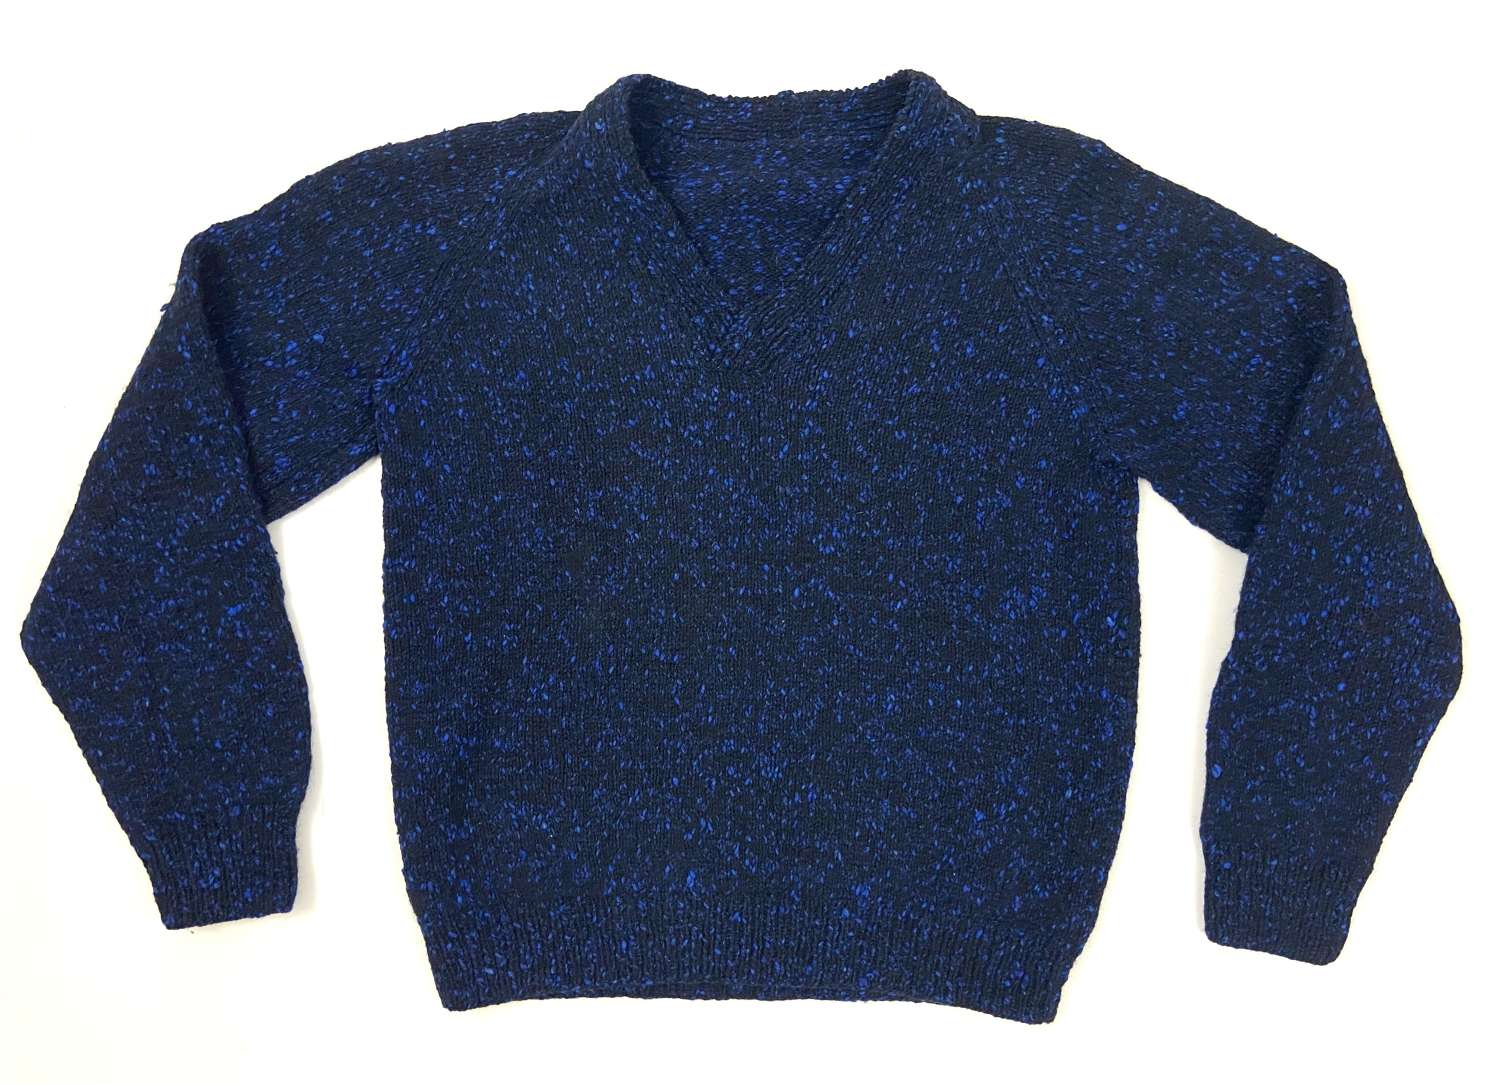 Original 1950s Men's Atomic Fleck V-Neck Jumper